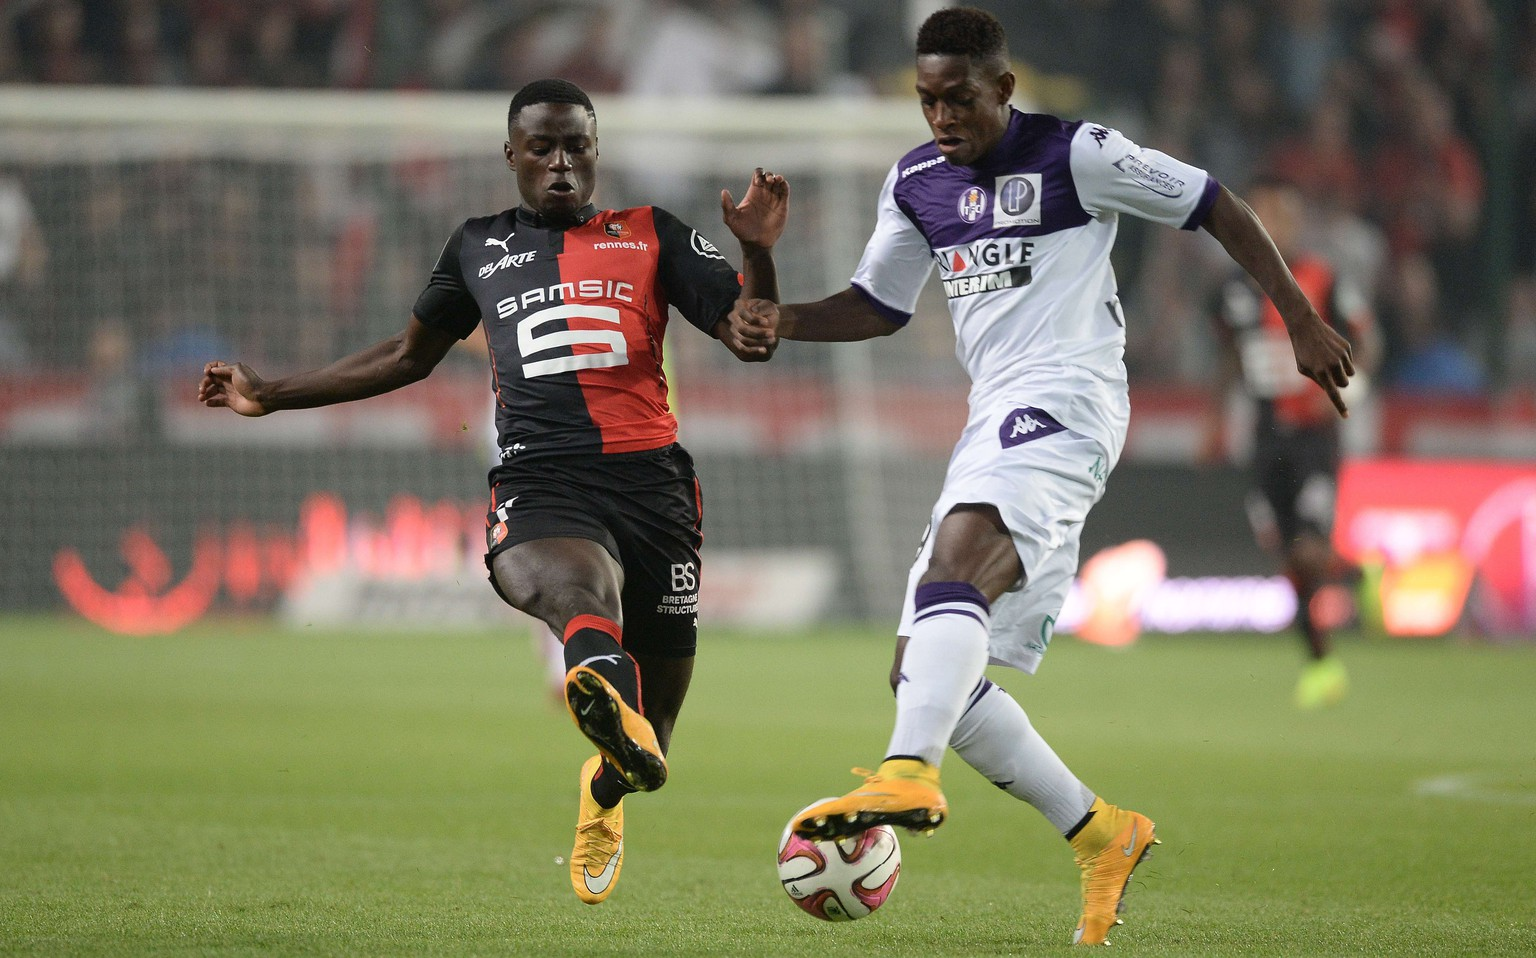 Rennes' French Cameroonian forward Paul-Georges Ntep (L) vies with Toulouse's Swiss defender Jacques-François Moubandje during the French L1 football match between Rennes (SRFC) and Toulouse(TFC) on September 23, 2014 at the route de Lorient stadium in Rennes, western France. AFP PHOTO / JEAN-SEBASTIEN EVRARD